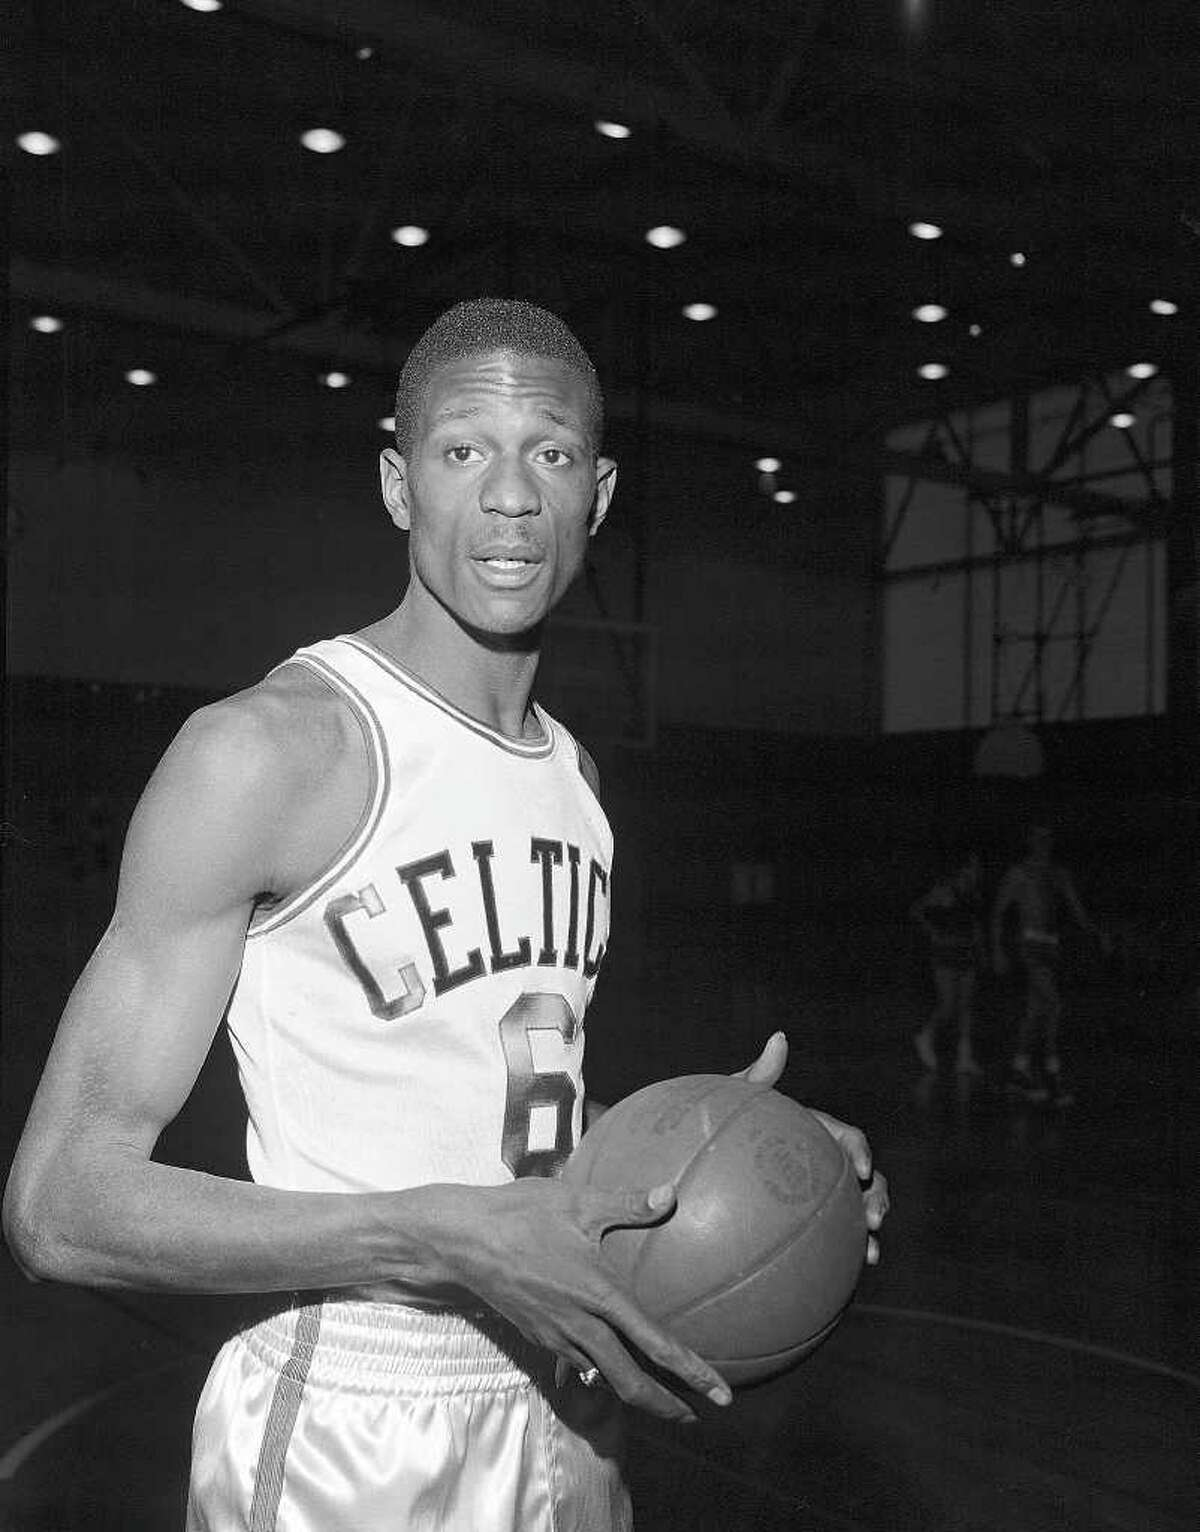 Bill Russell , who played his entire career with the Boston Celtics, averaged a double-double for 12 of his 13 seasons. His career averages were 15.1 points and 22.5 rebounds. His best shooting season was 1961-62, when he averaged 18.9 points and 23.6 rebounds. In 1963-64, when he averaged 15.0 points and 24.7 rebounds, his best on the boards.